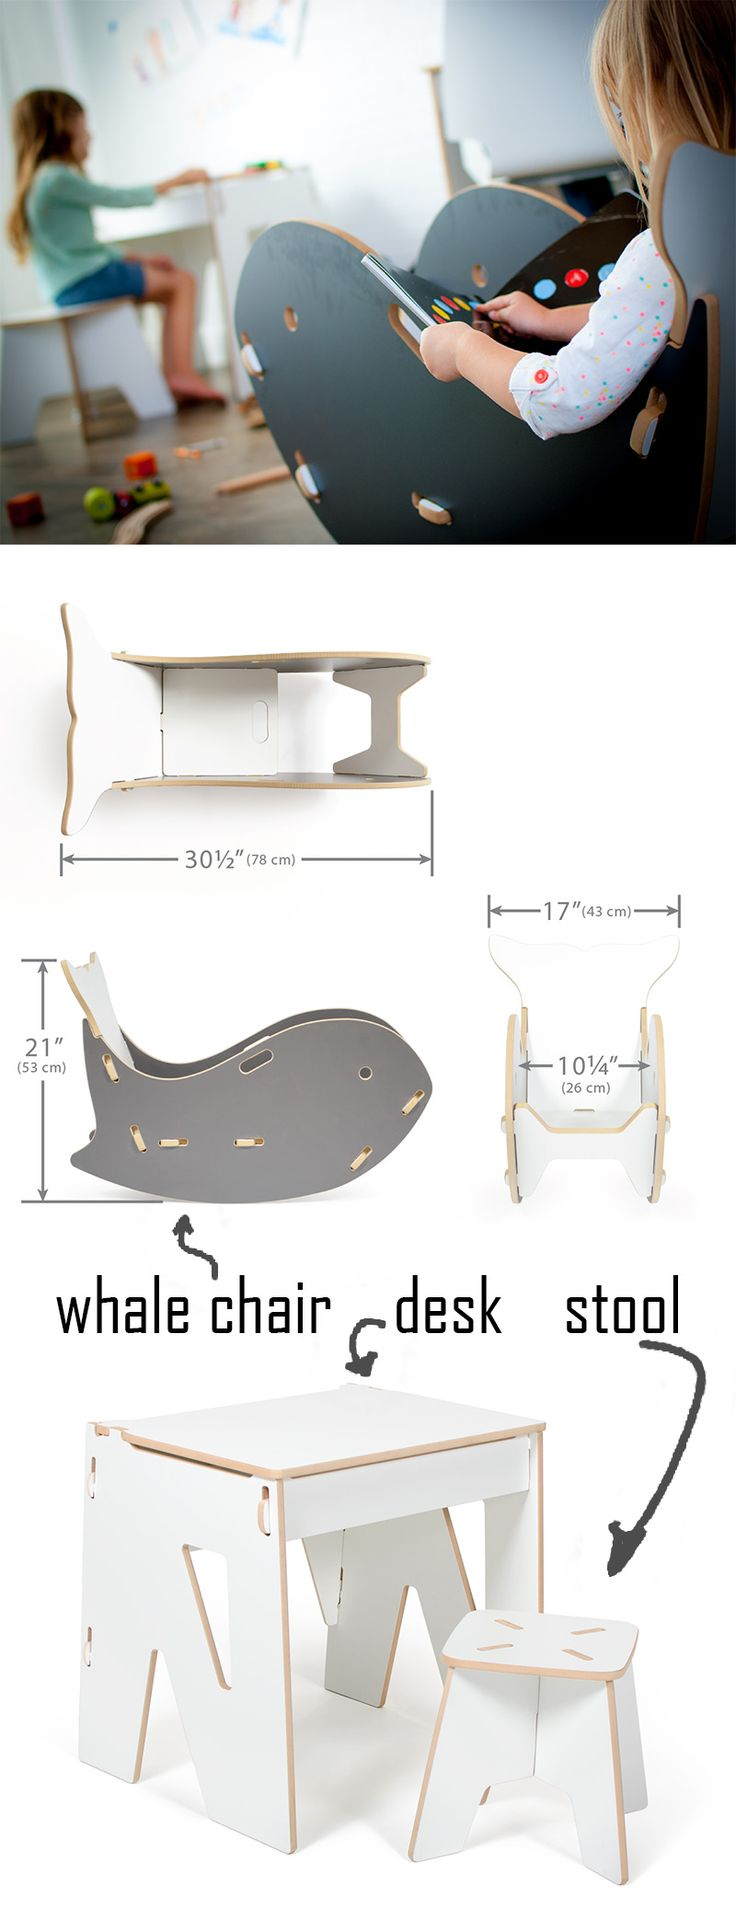 Ideas and inspiration for kids decorating with stuva petit amp small - Best 25 Kid Desk Ideas On Pinterest Small Study Area Kids Desk Areas And Small White Desk